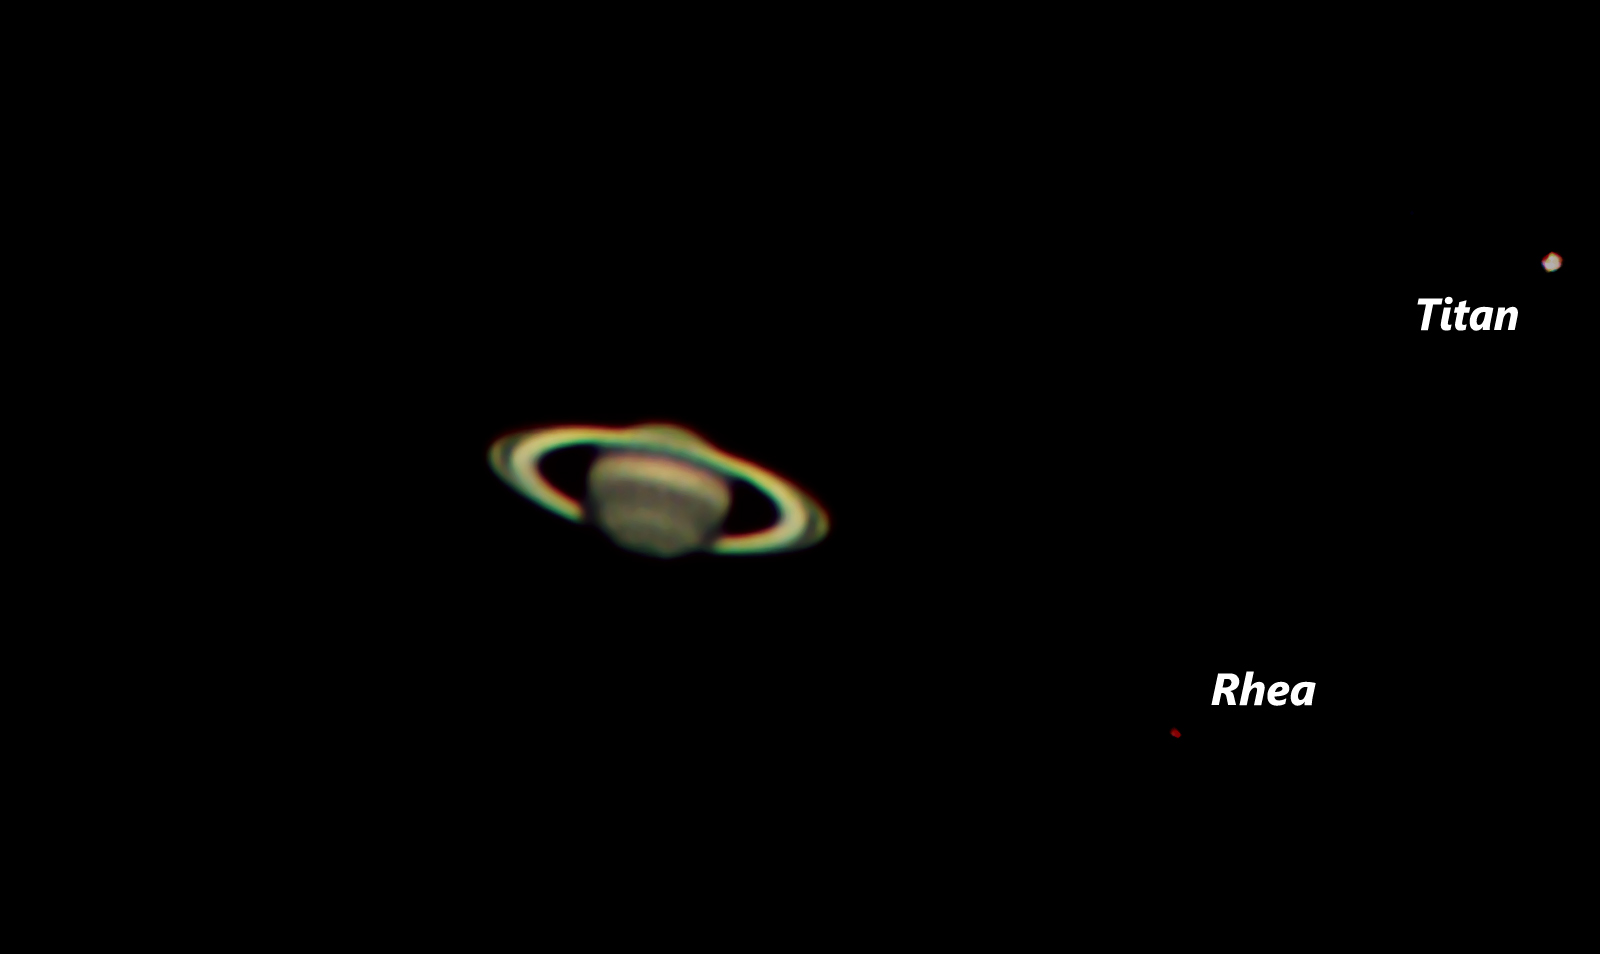 Saturn with Two Moons (an)